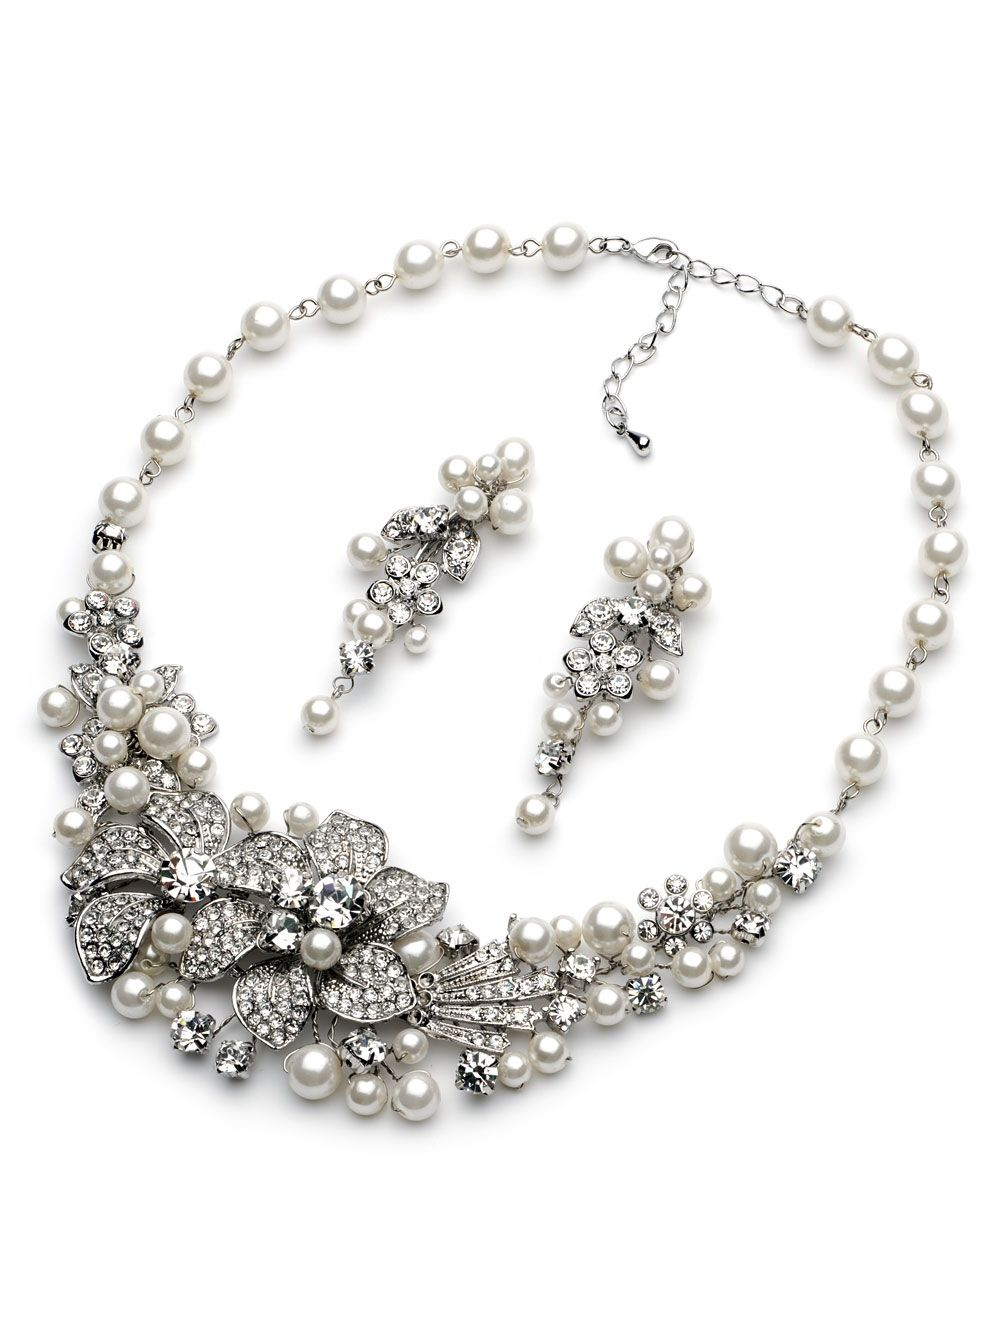 Couture Pearl Crystal Necklace and Earrings Jewelry Set